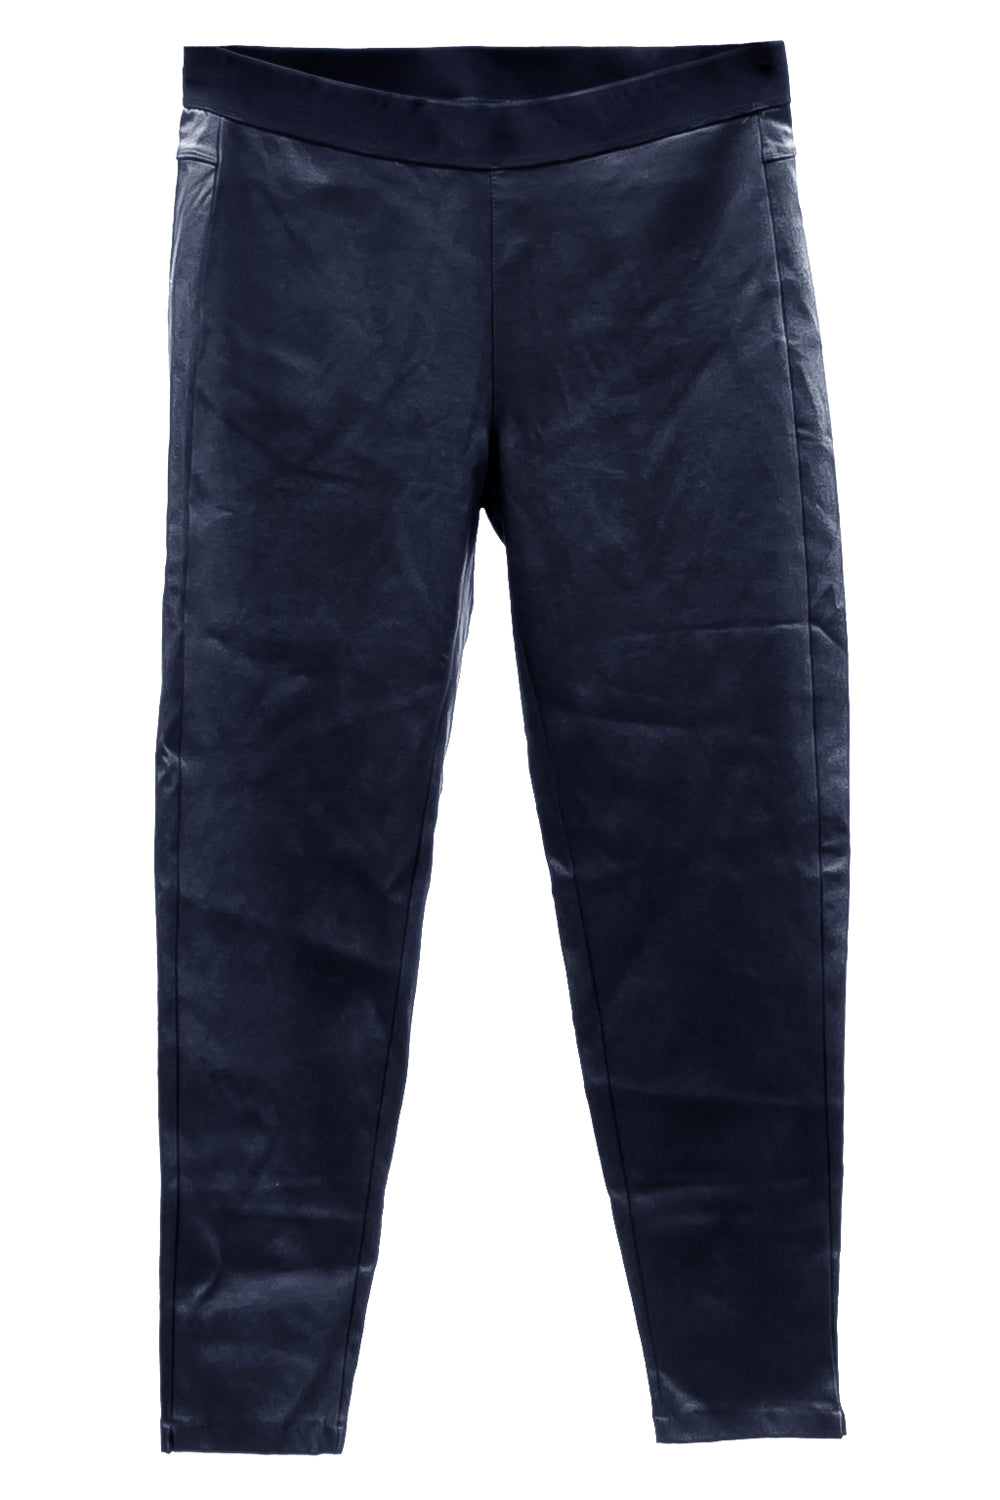 Lounge The Label / Perugia Pant / Ink